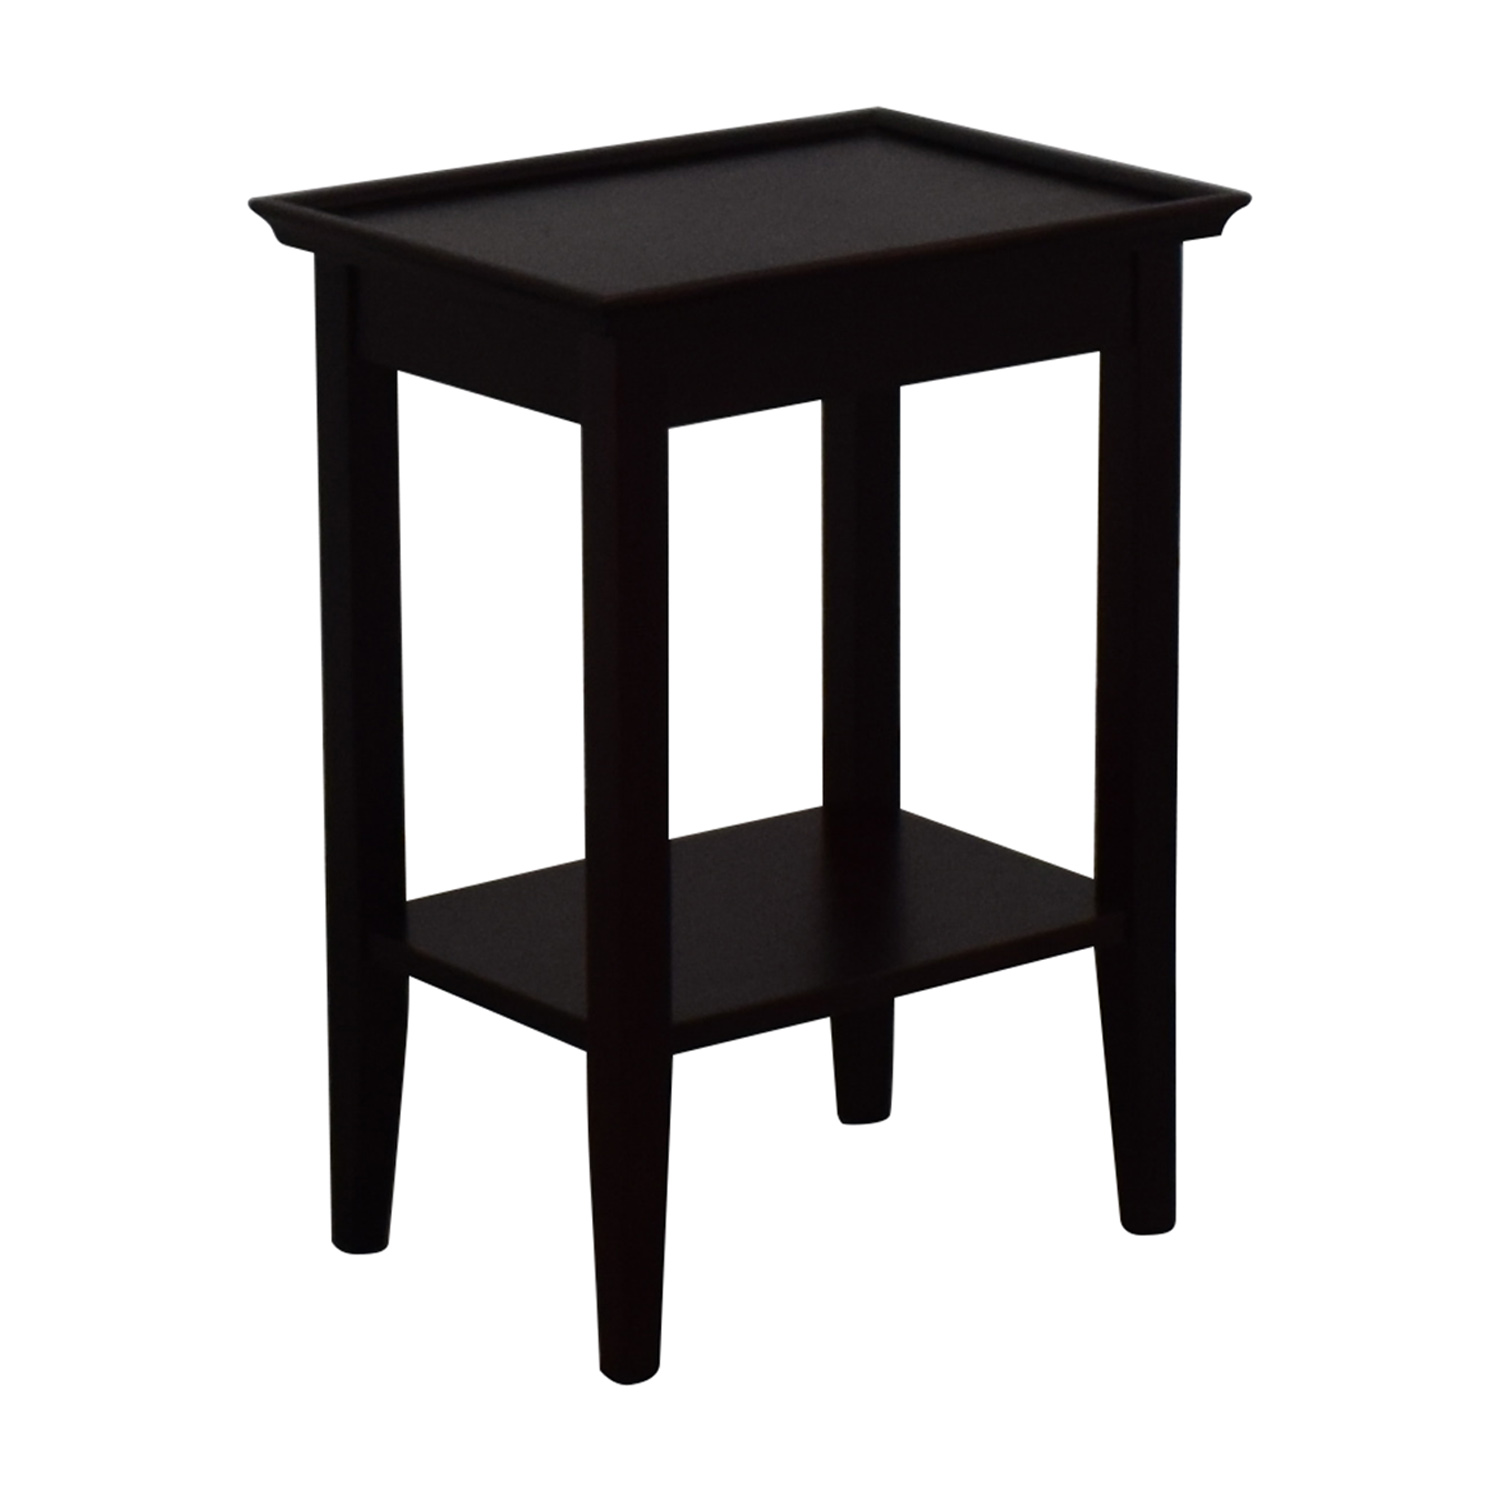 Crate & Barrel Crate & Barrel Bradshaw Side Table for sale